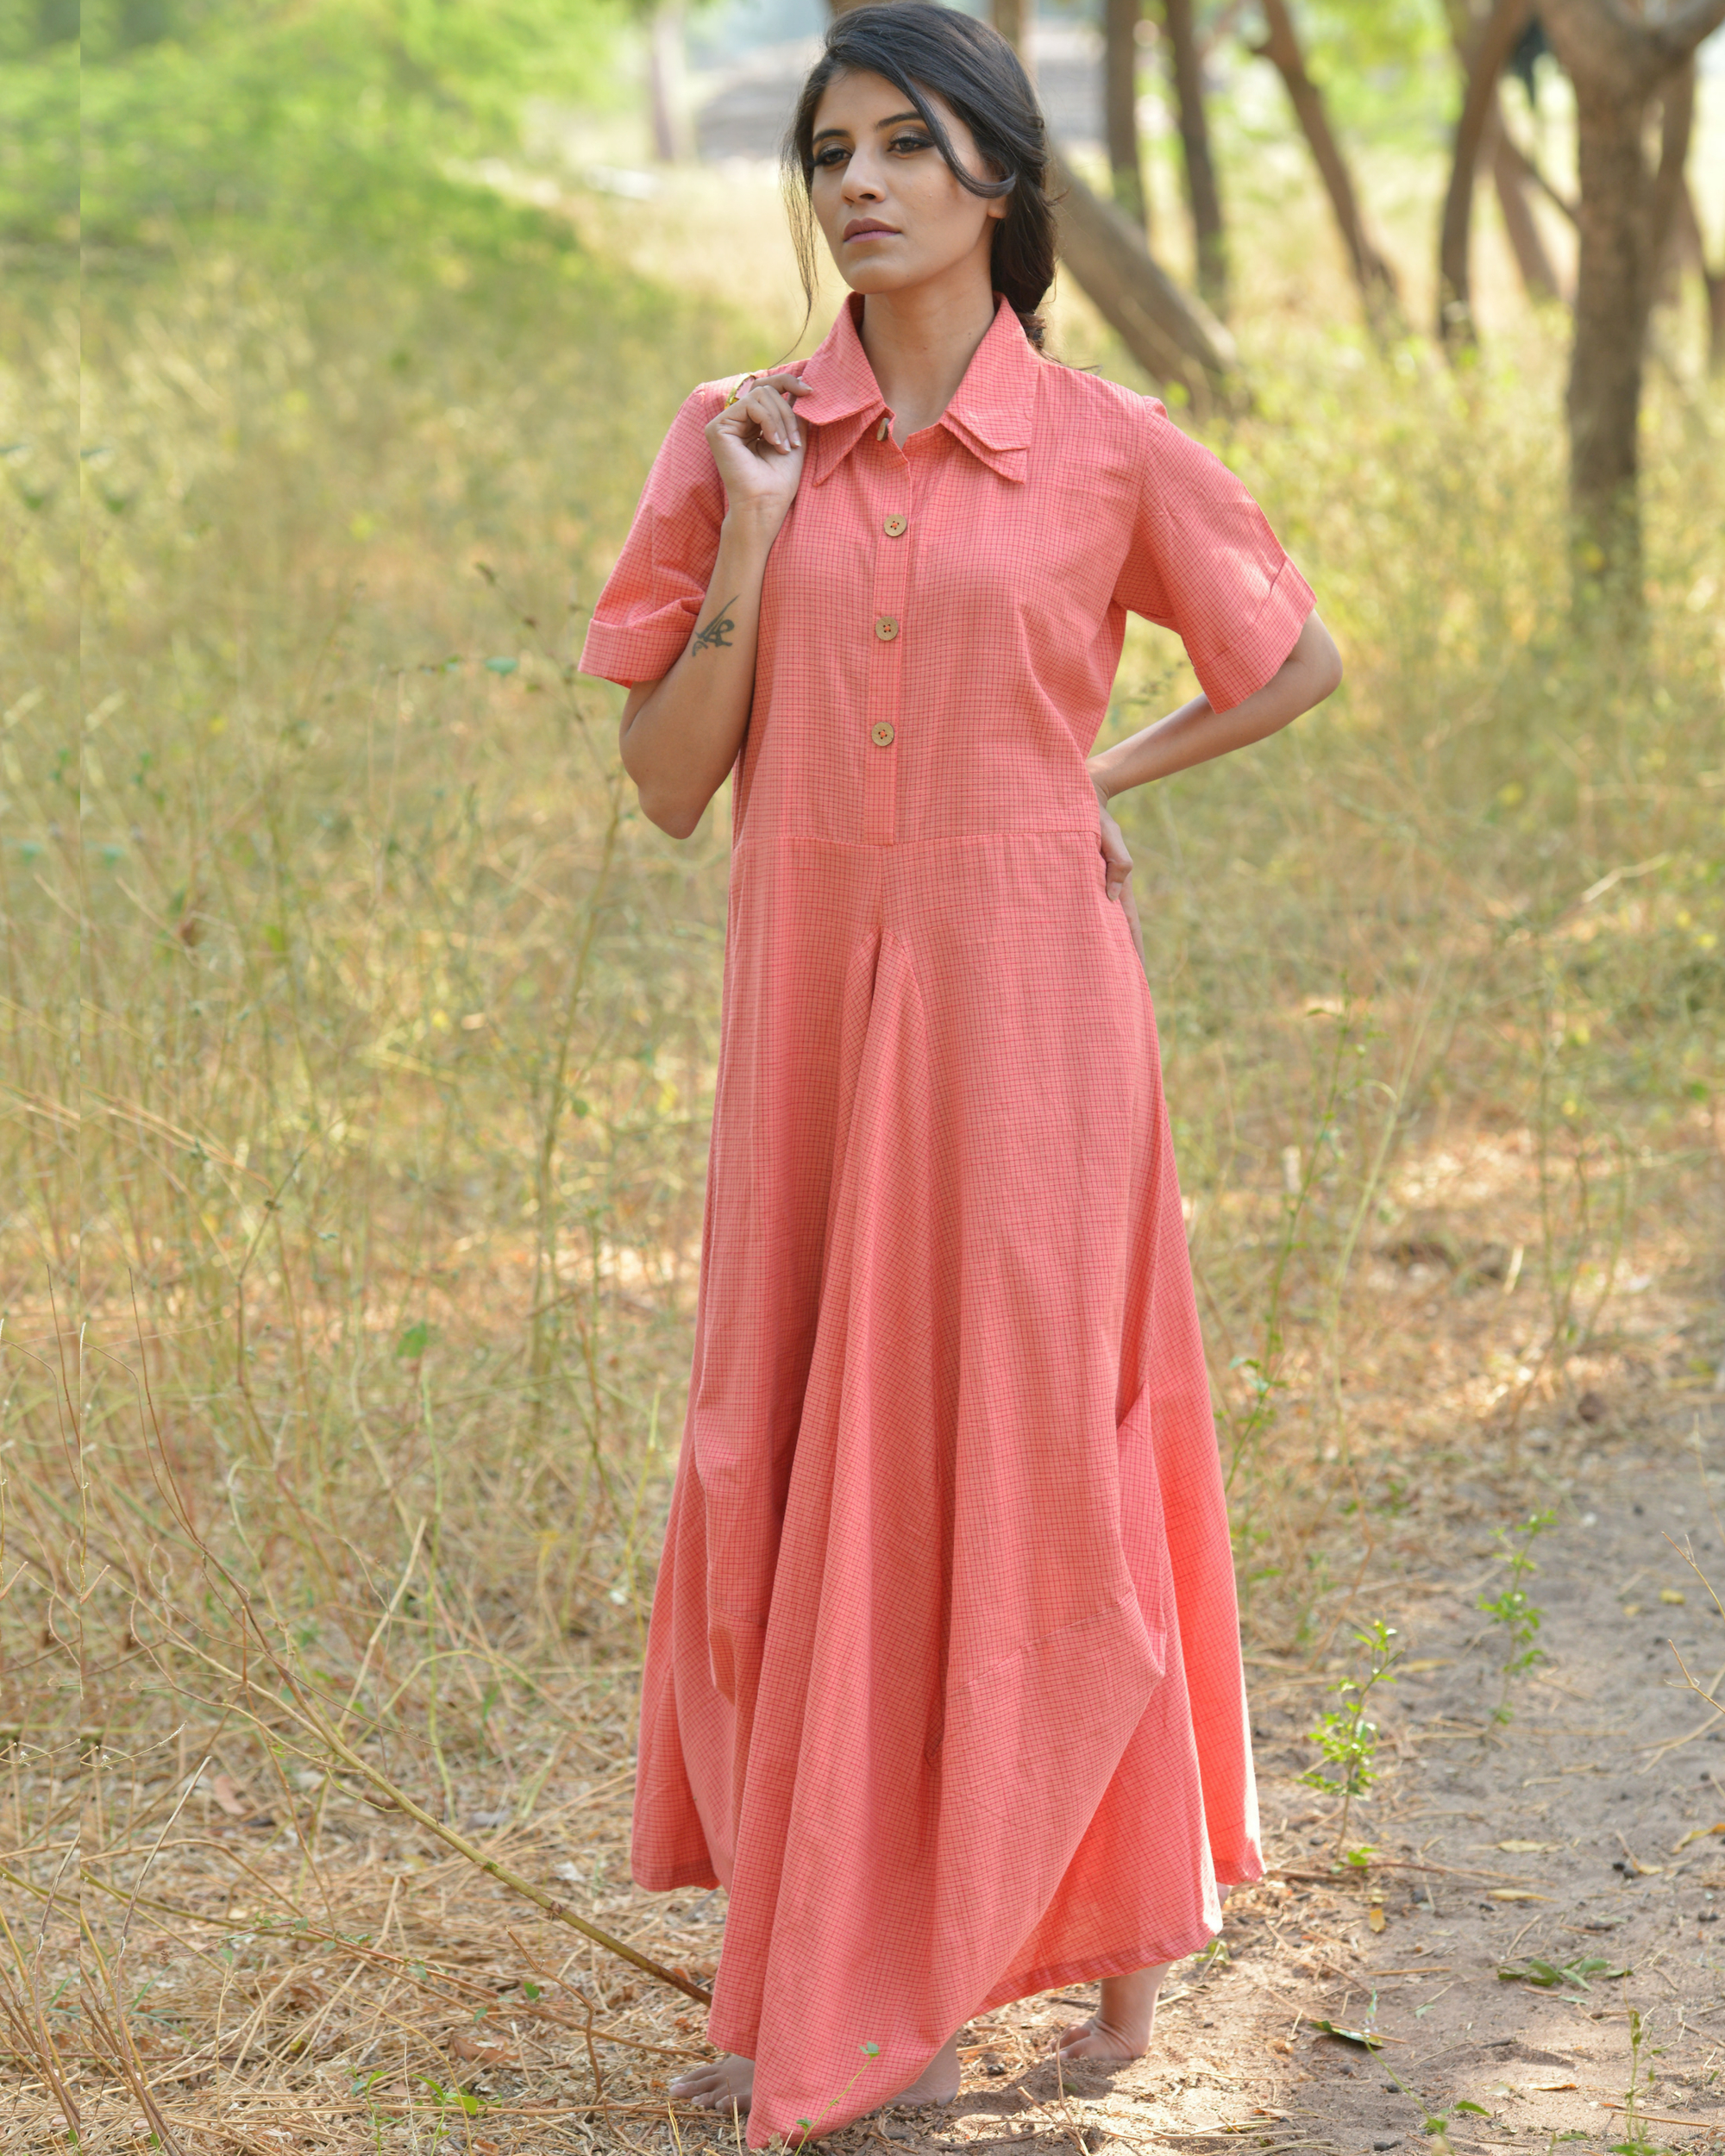 Blush peach cotton maxi dress